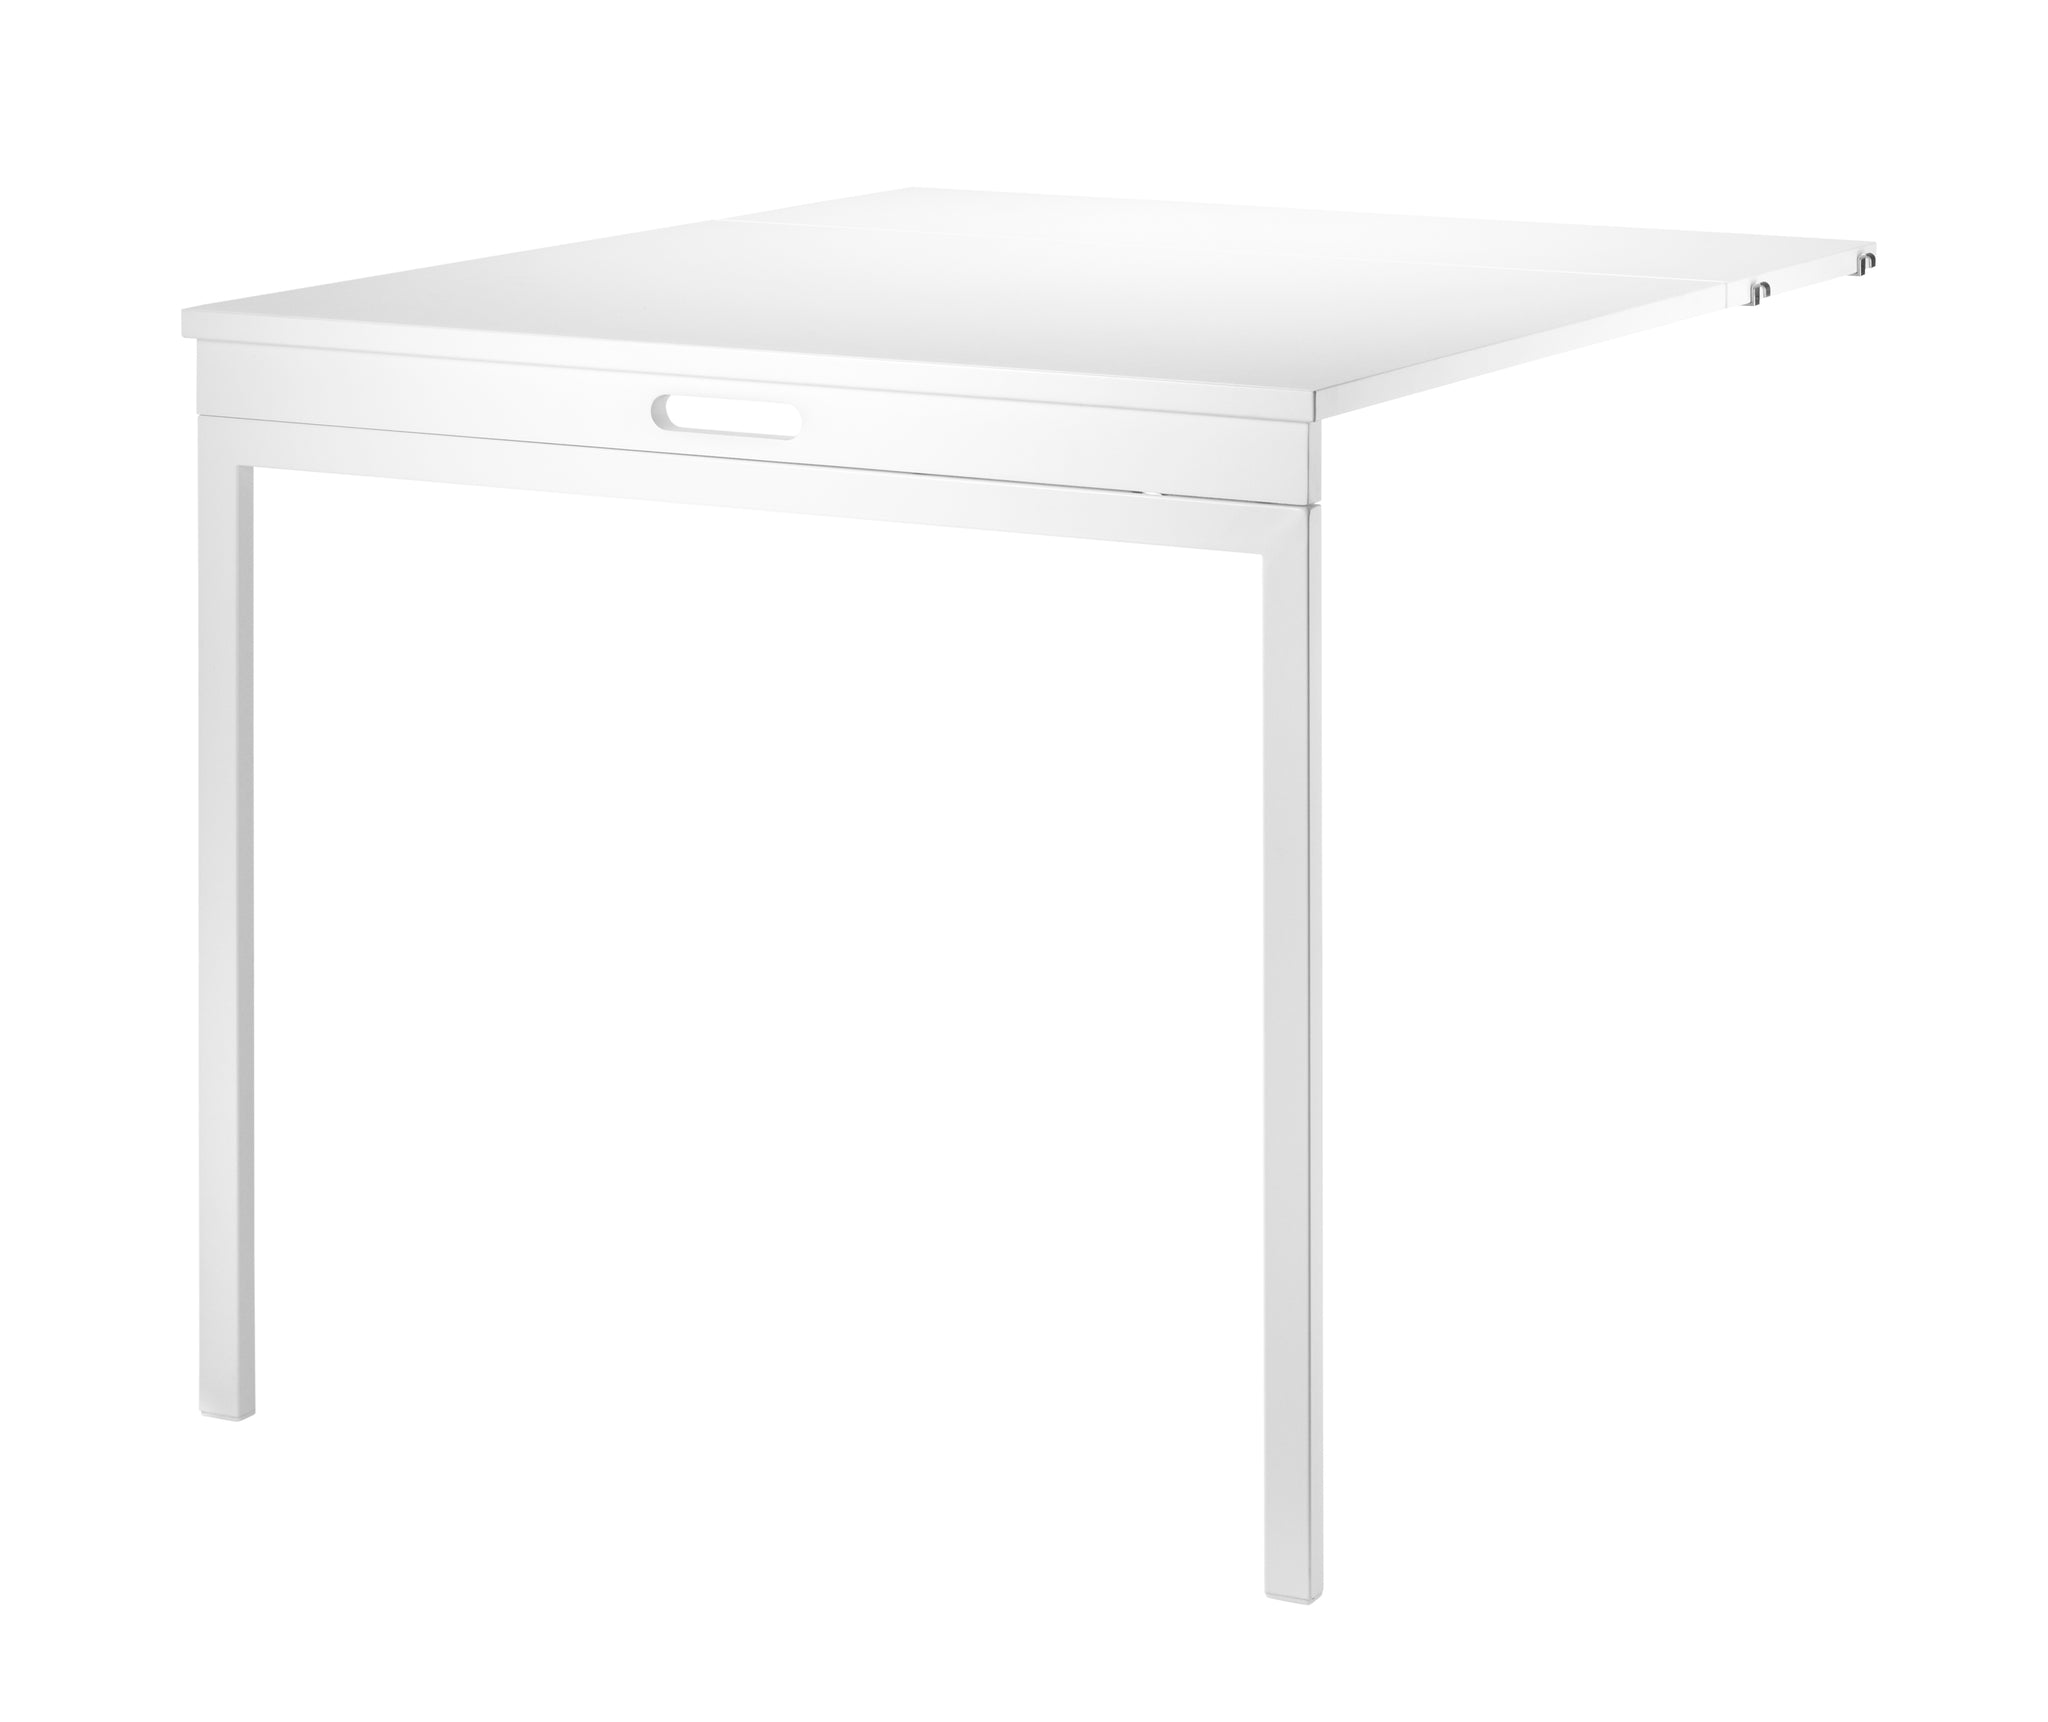 String - Folding table, Furniture Shelf storage, String, Places and Spaces Design Ltd